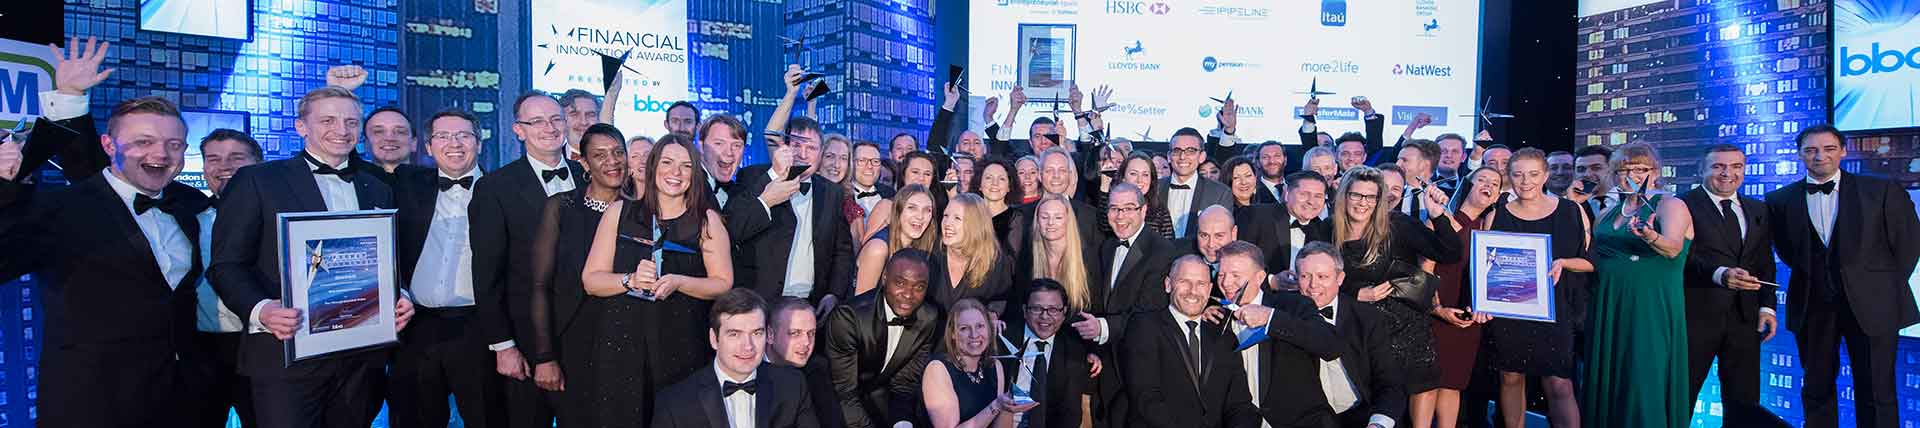 Winners at the Financial Innovation Awards ceremony